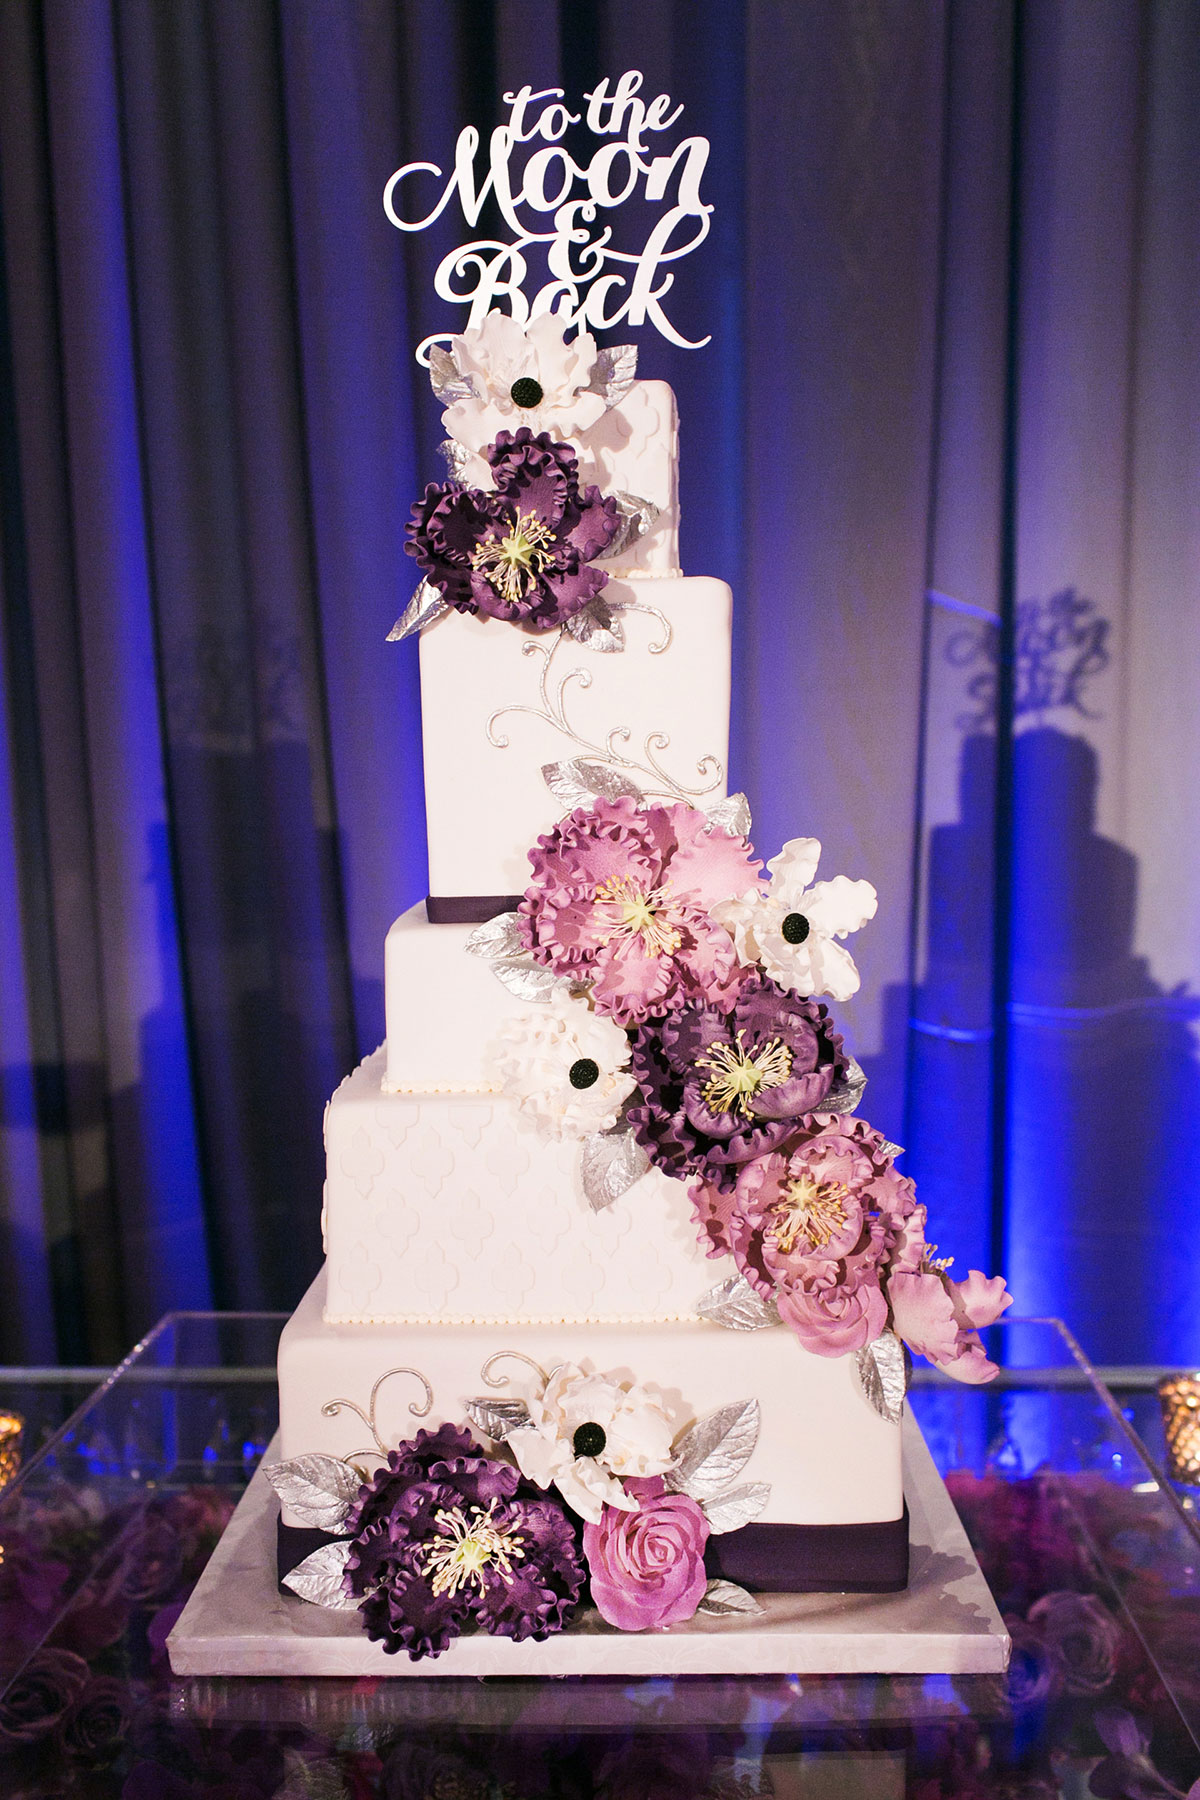 Pantone Color of the Year 2018 Ultra Violet wedding ideas wedding cake with purple flowers